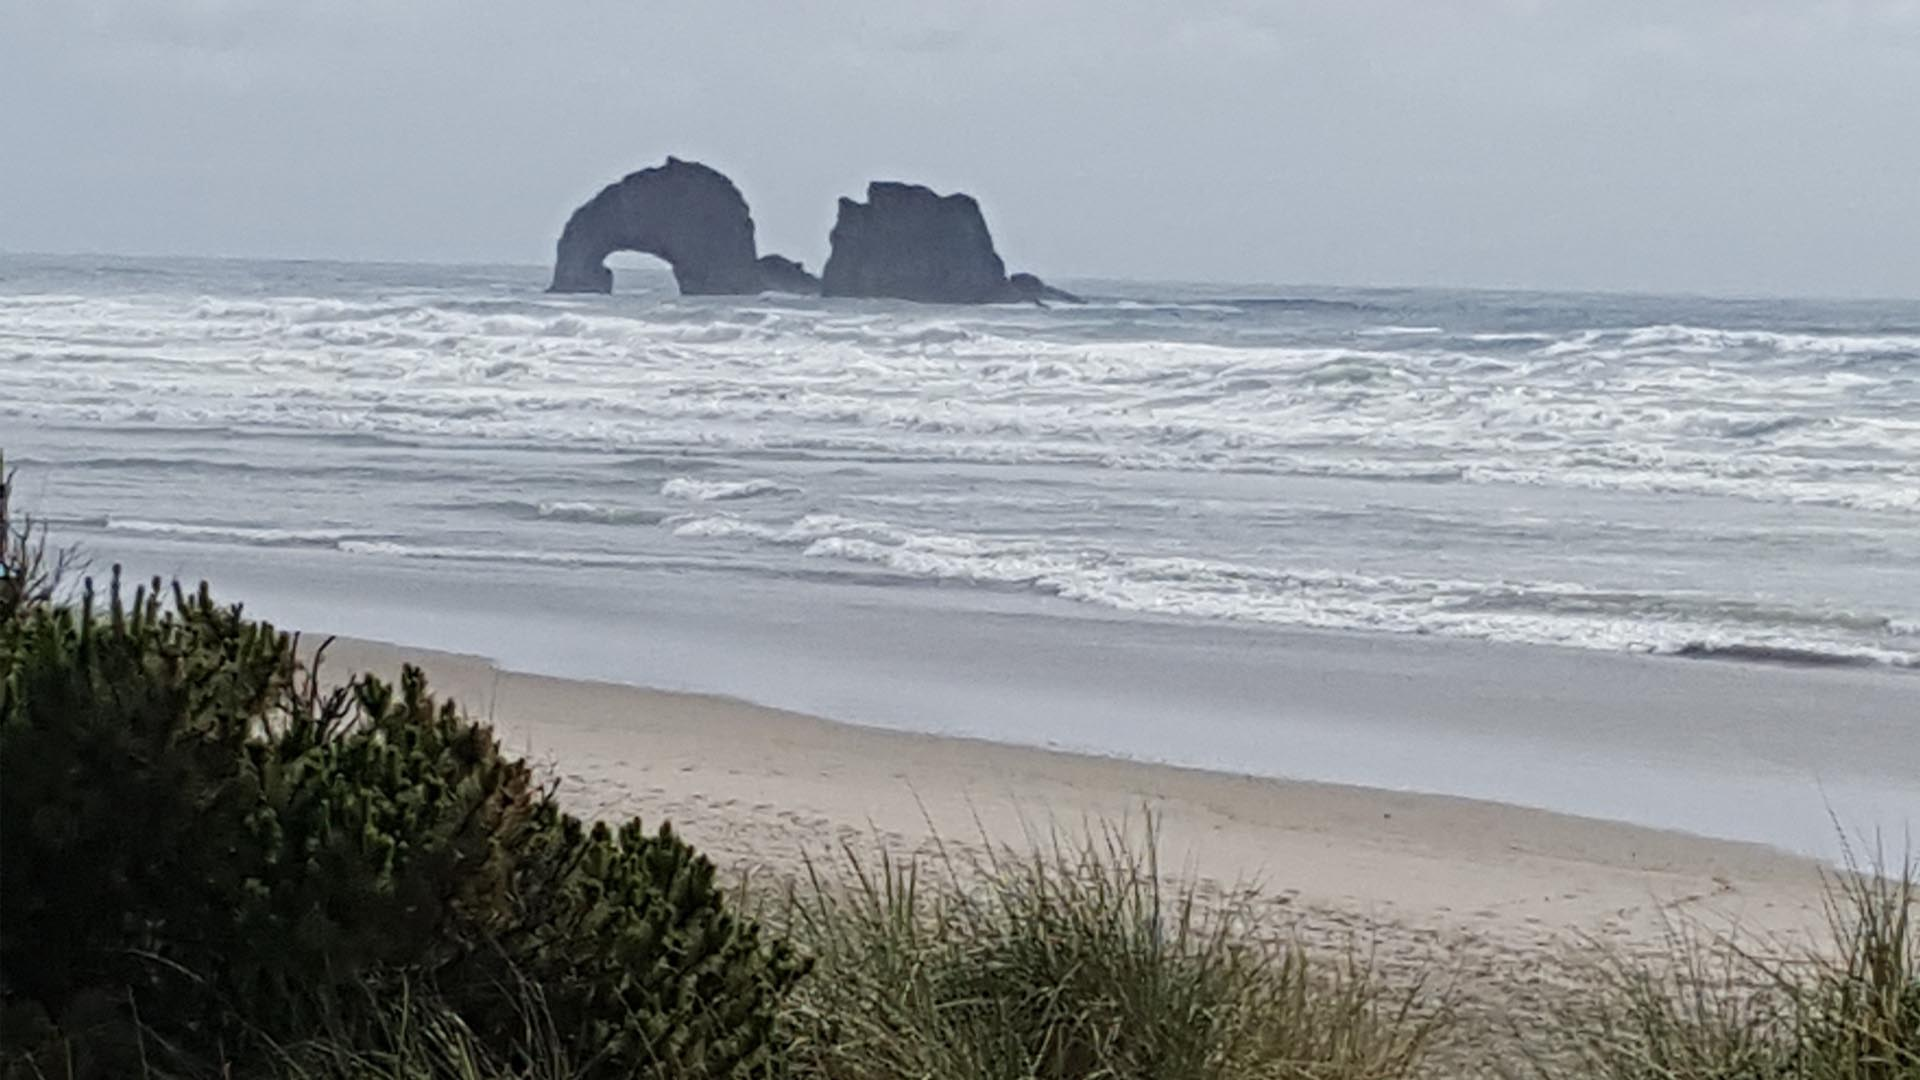 Rockaway Beach Ore A Father D While Trying To Rescue His Son From Drowning In The Pacific Ocean Near Oregon